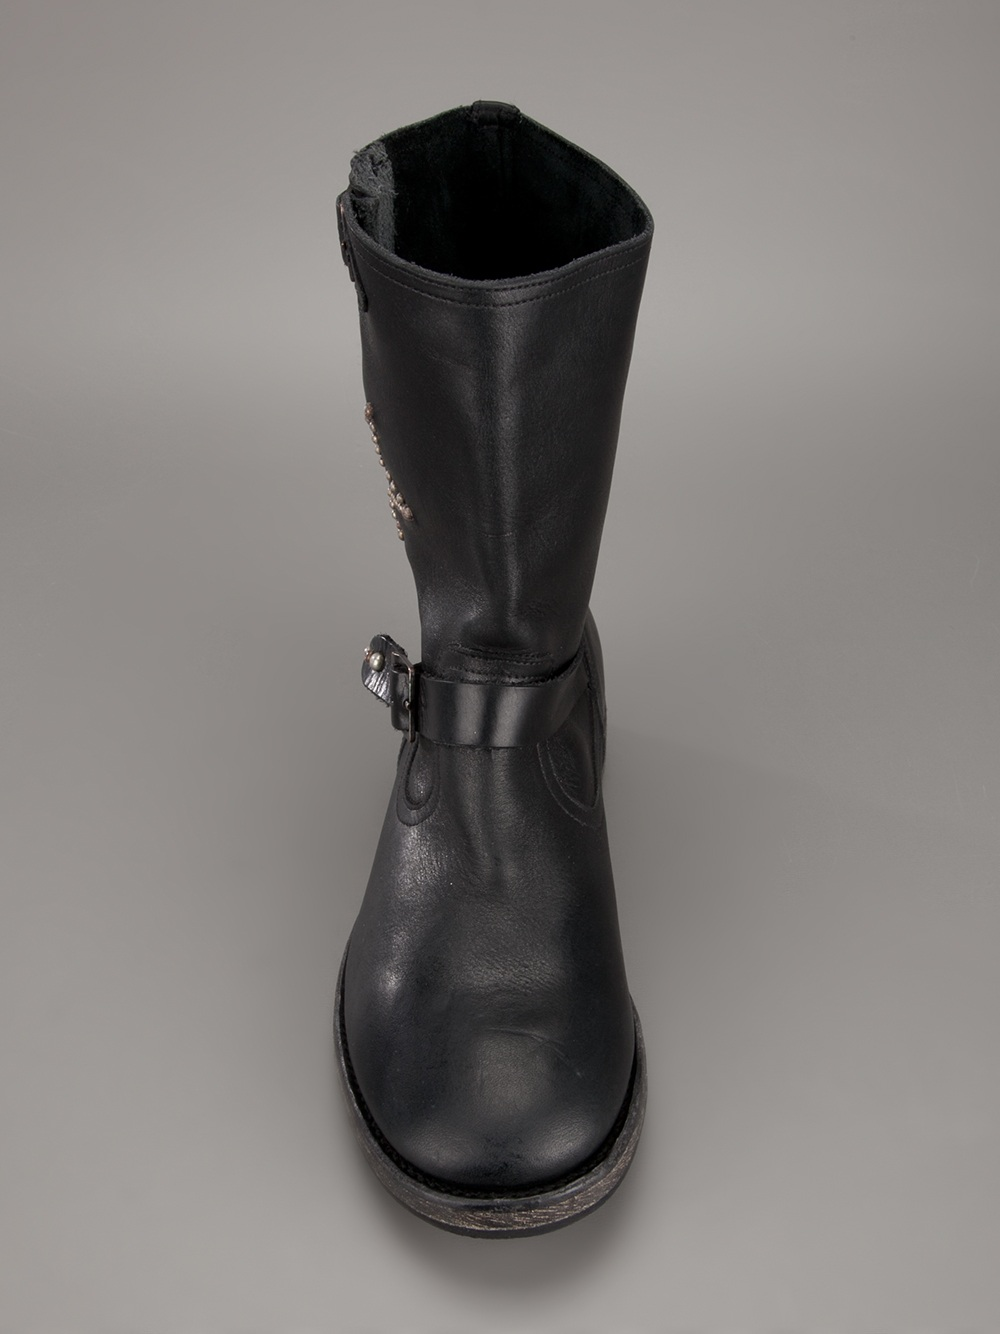 HTC Hollywood Trading Company Studded Calf-Leather Biker Boots in Black